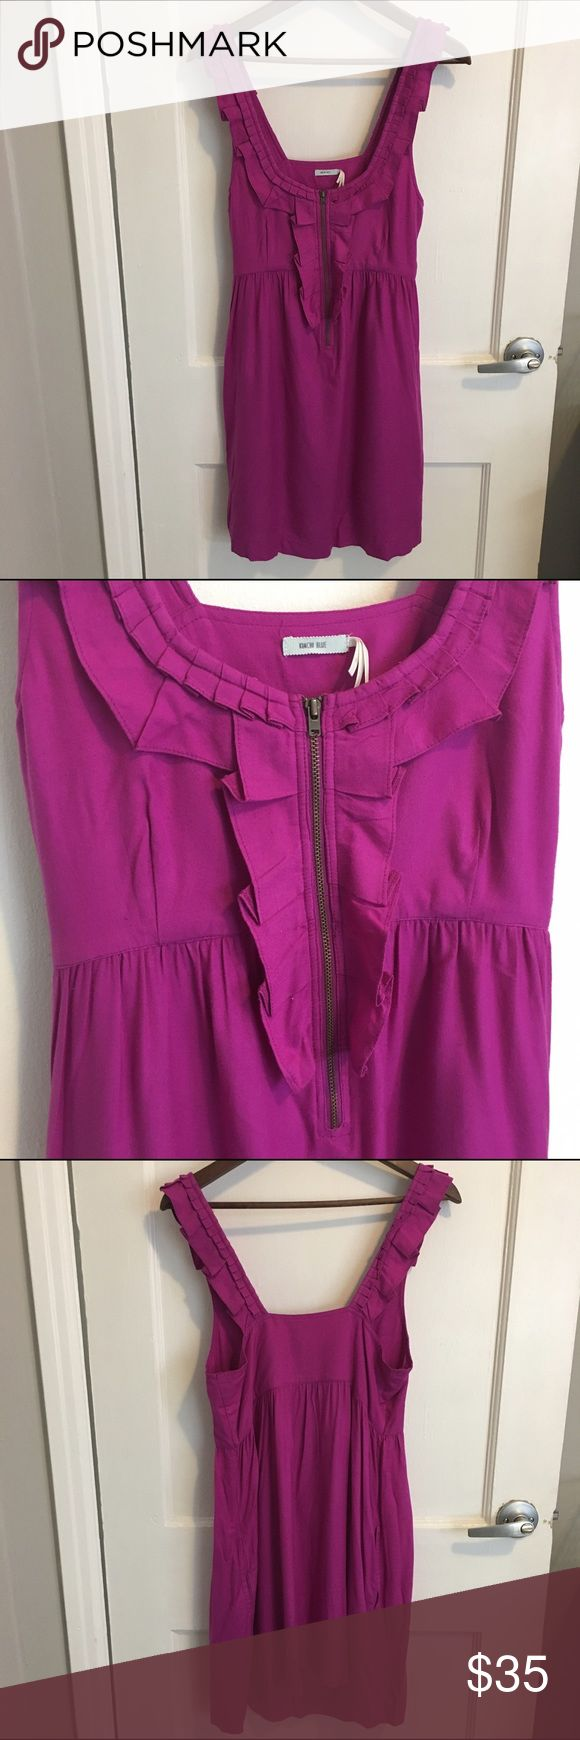 Anthropologie Kimchie Blue fuchsia dress Fun little number for summer. Pair it with funky jewelry and cool shoes and you've got the perfect party look. Anthropologie Dresses